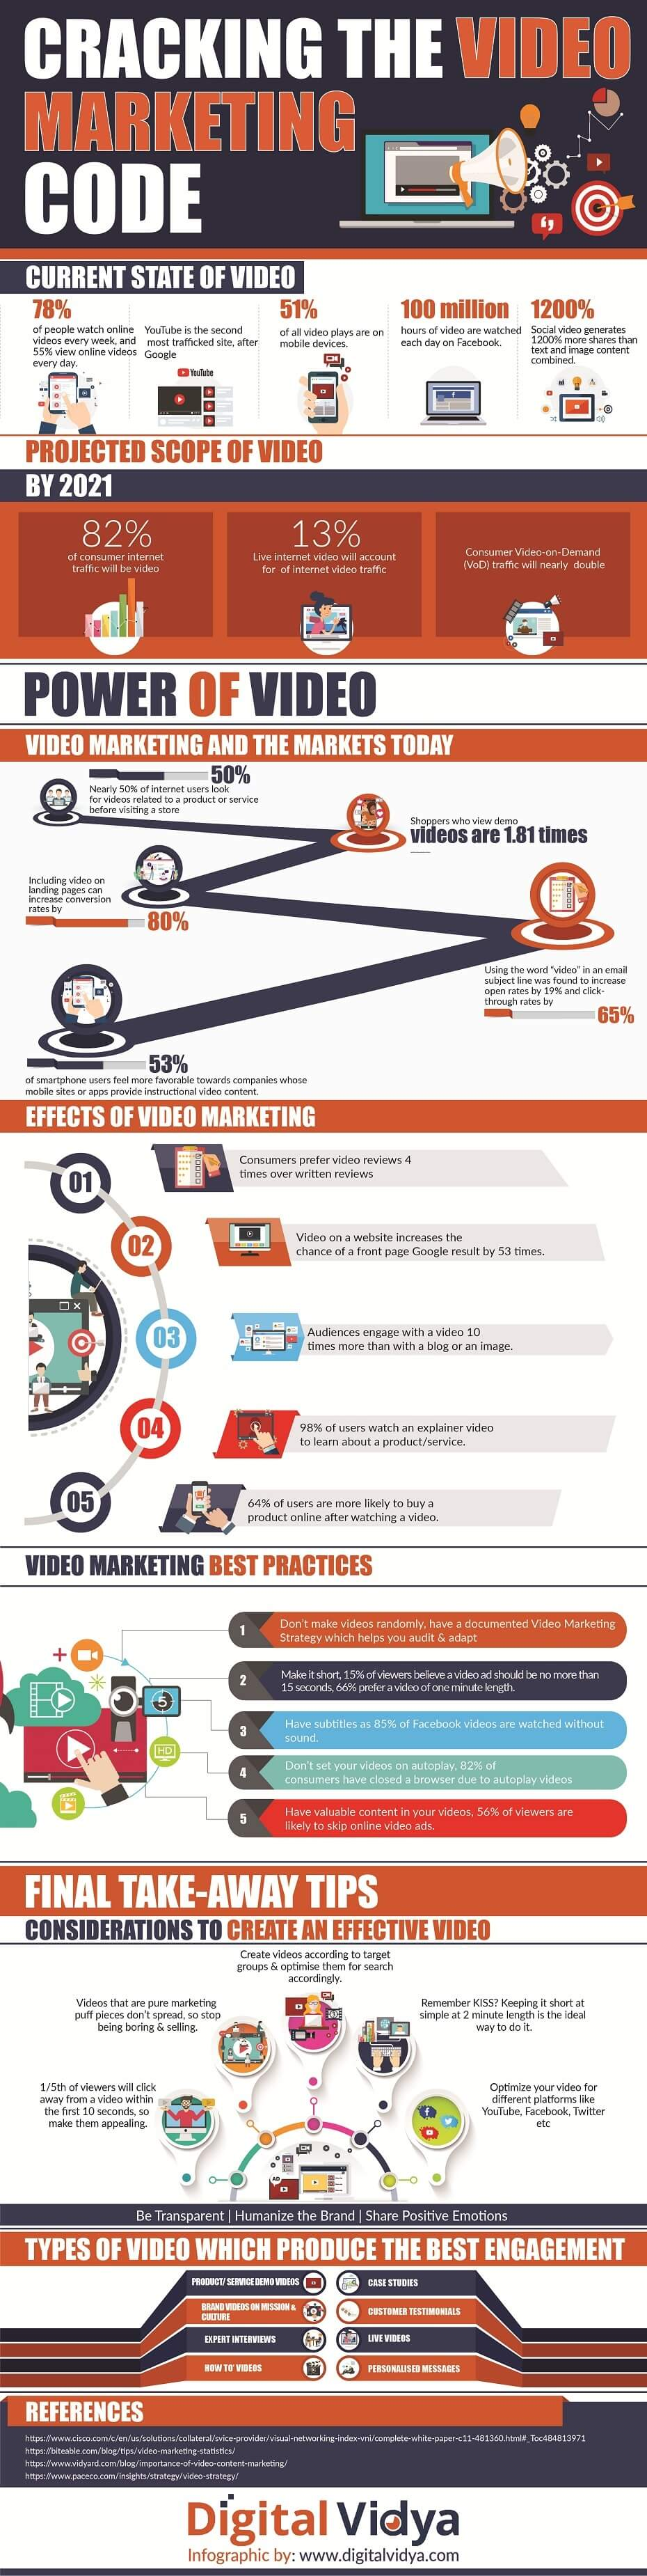 Cracking the Video Marketing Code